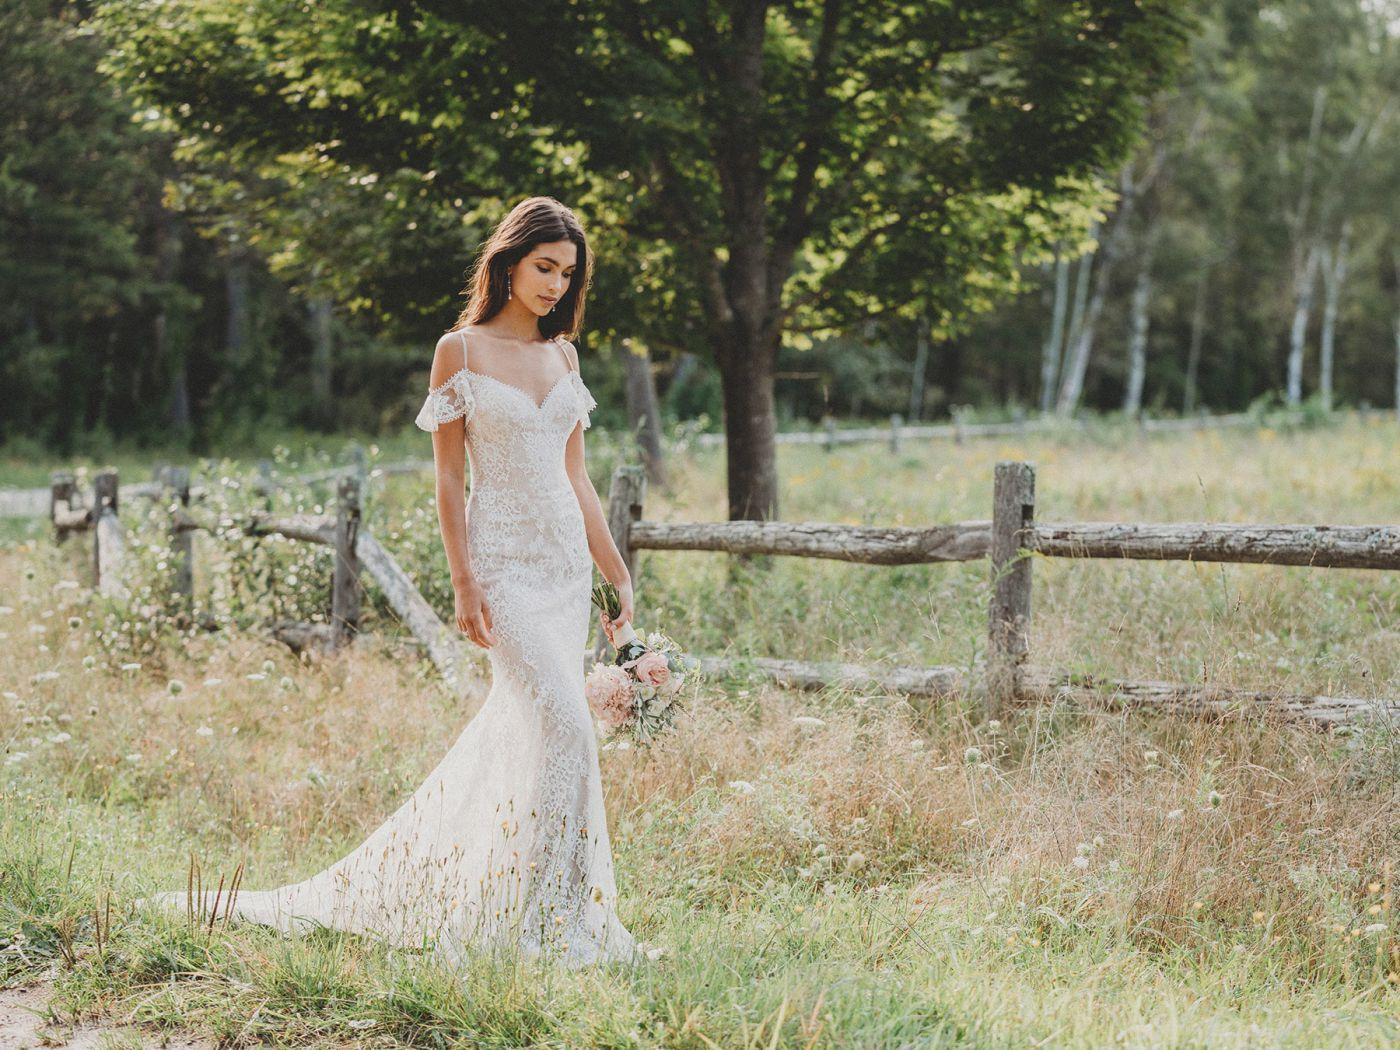 Boutique J'adore   Bridal and Formal